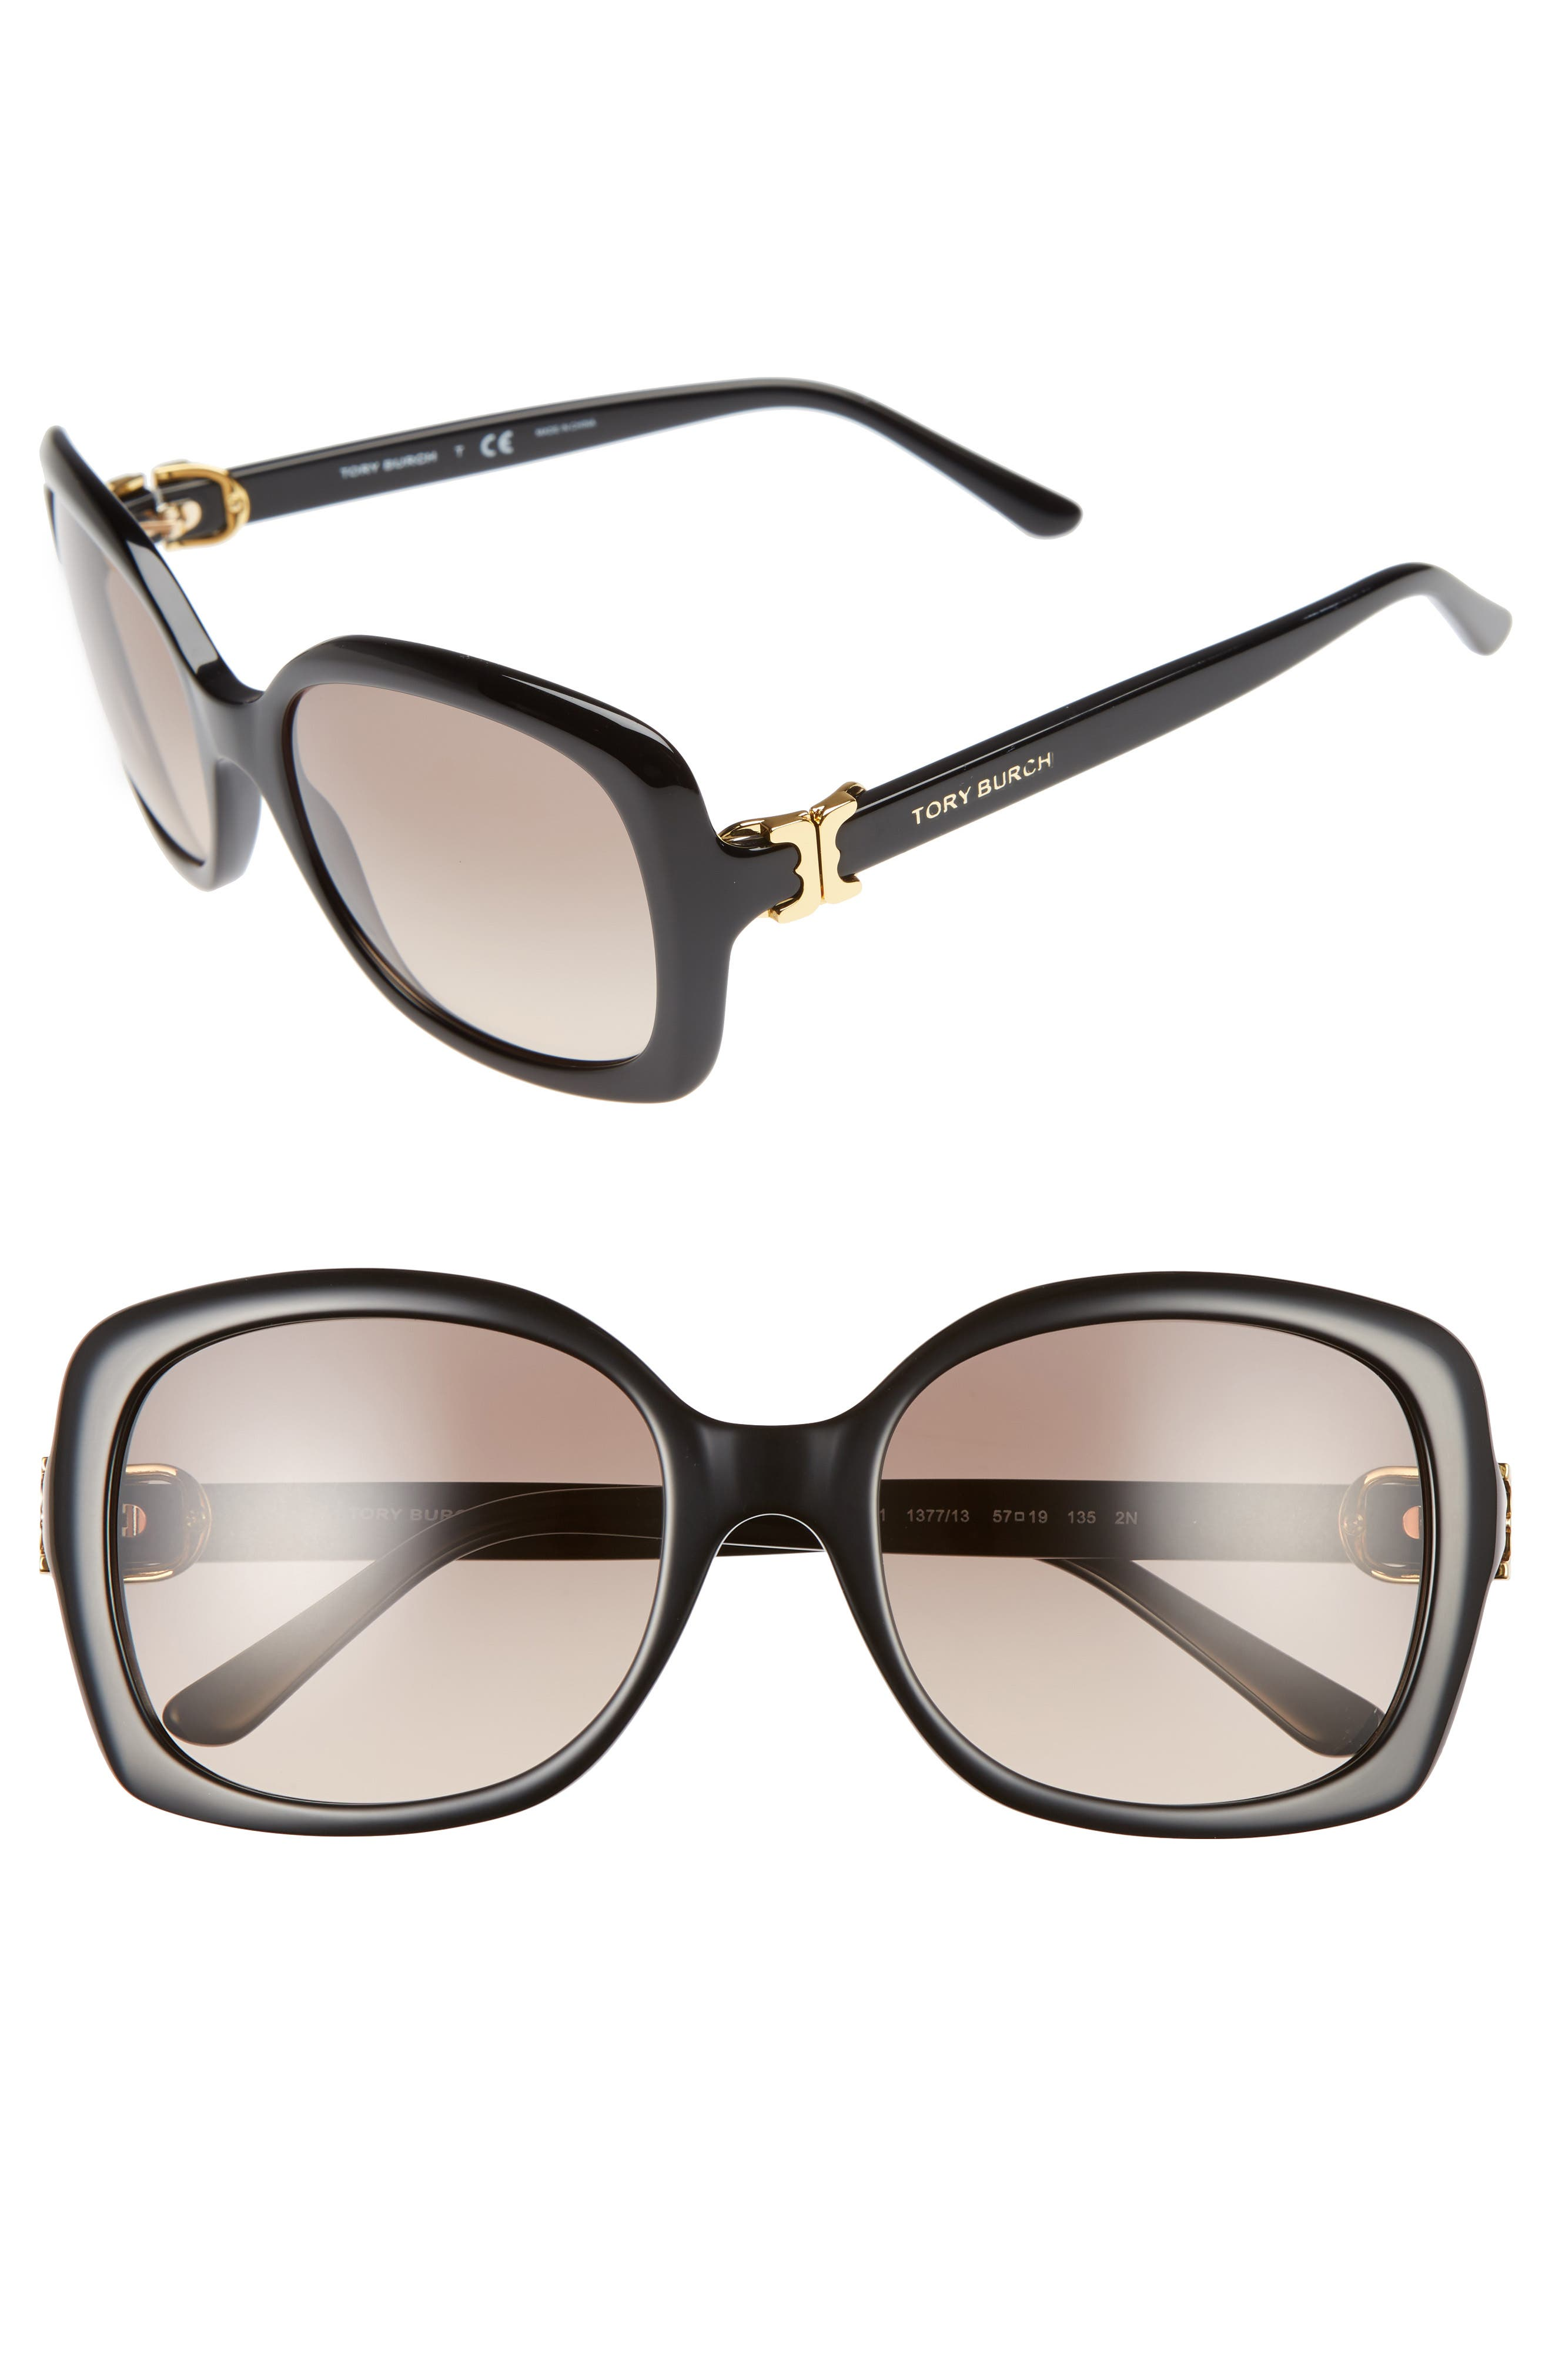 57mm Oversized Sunglasses,                         Main,                         color, 001